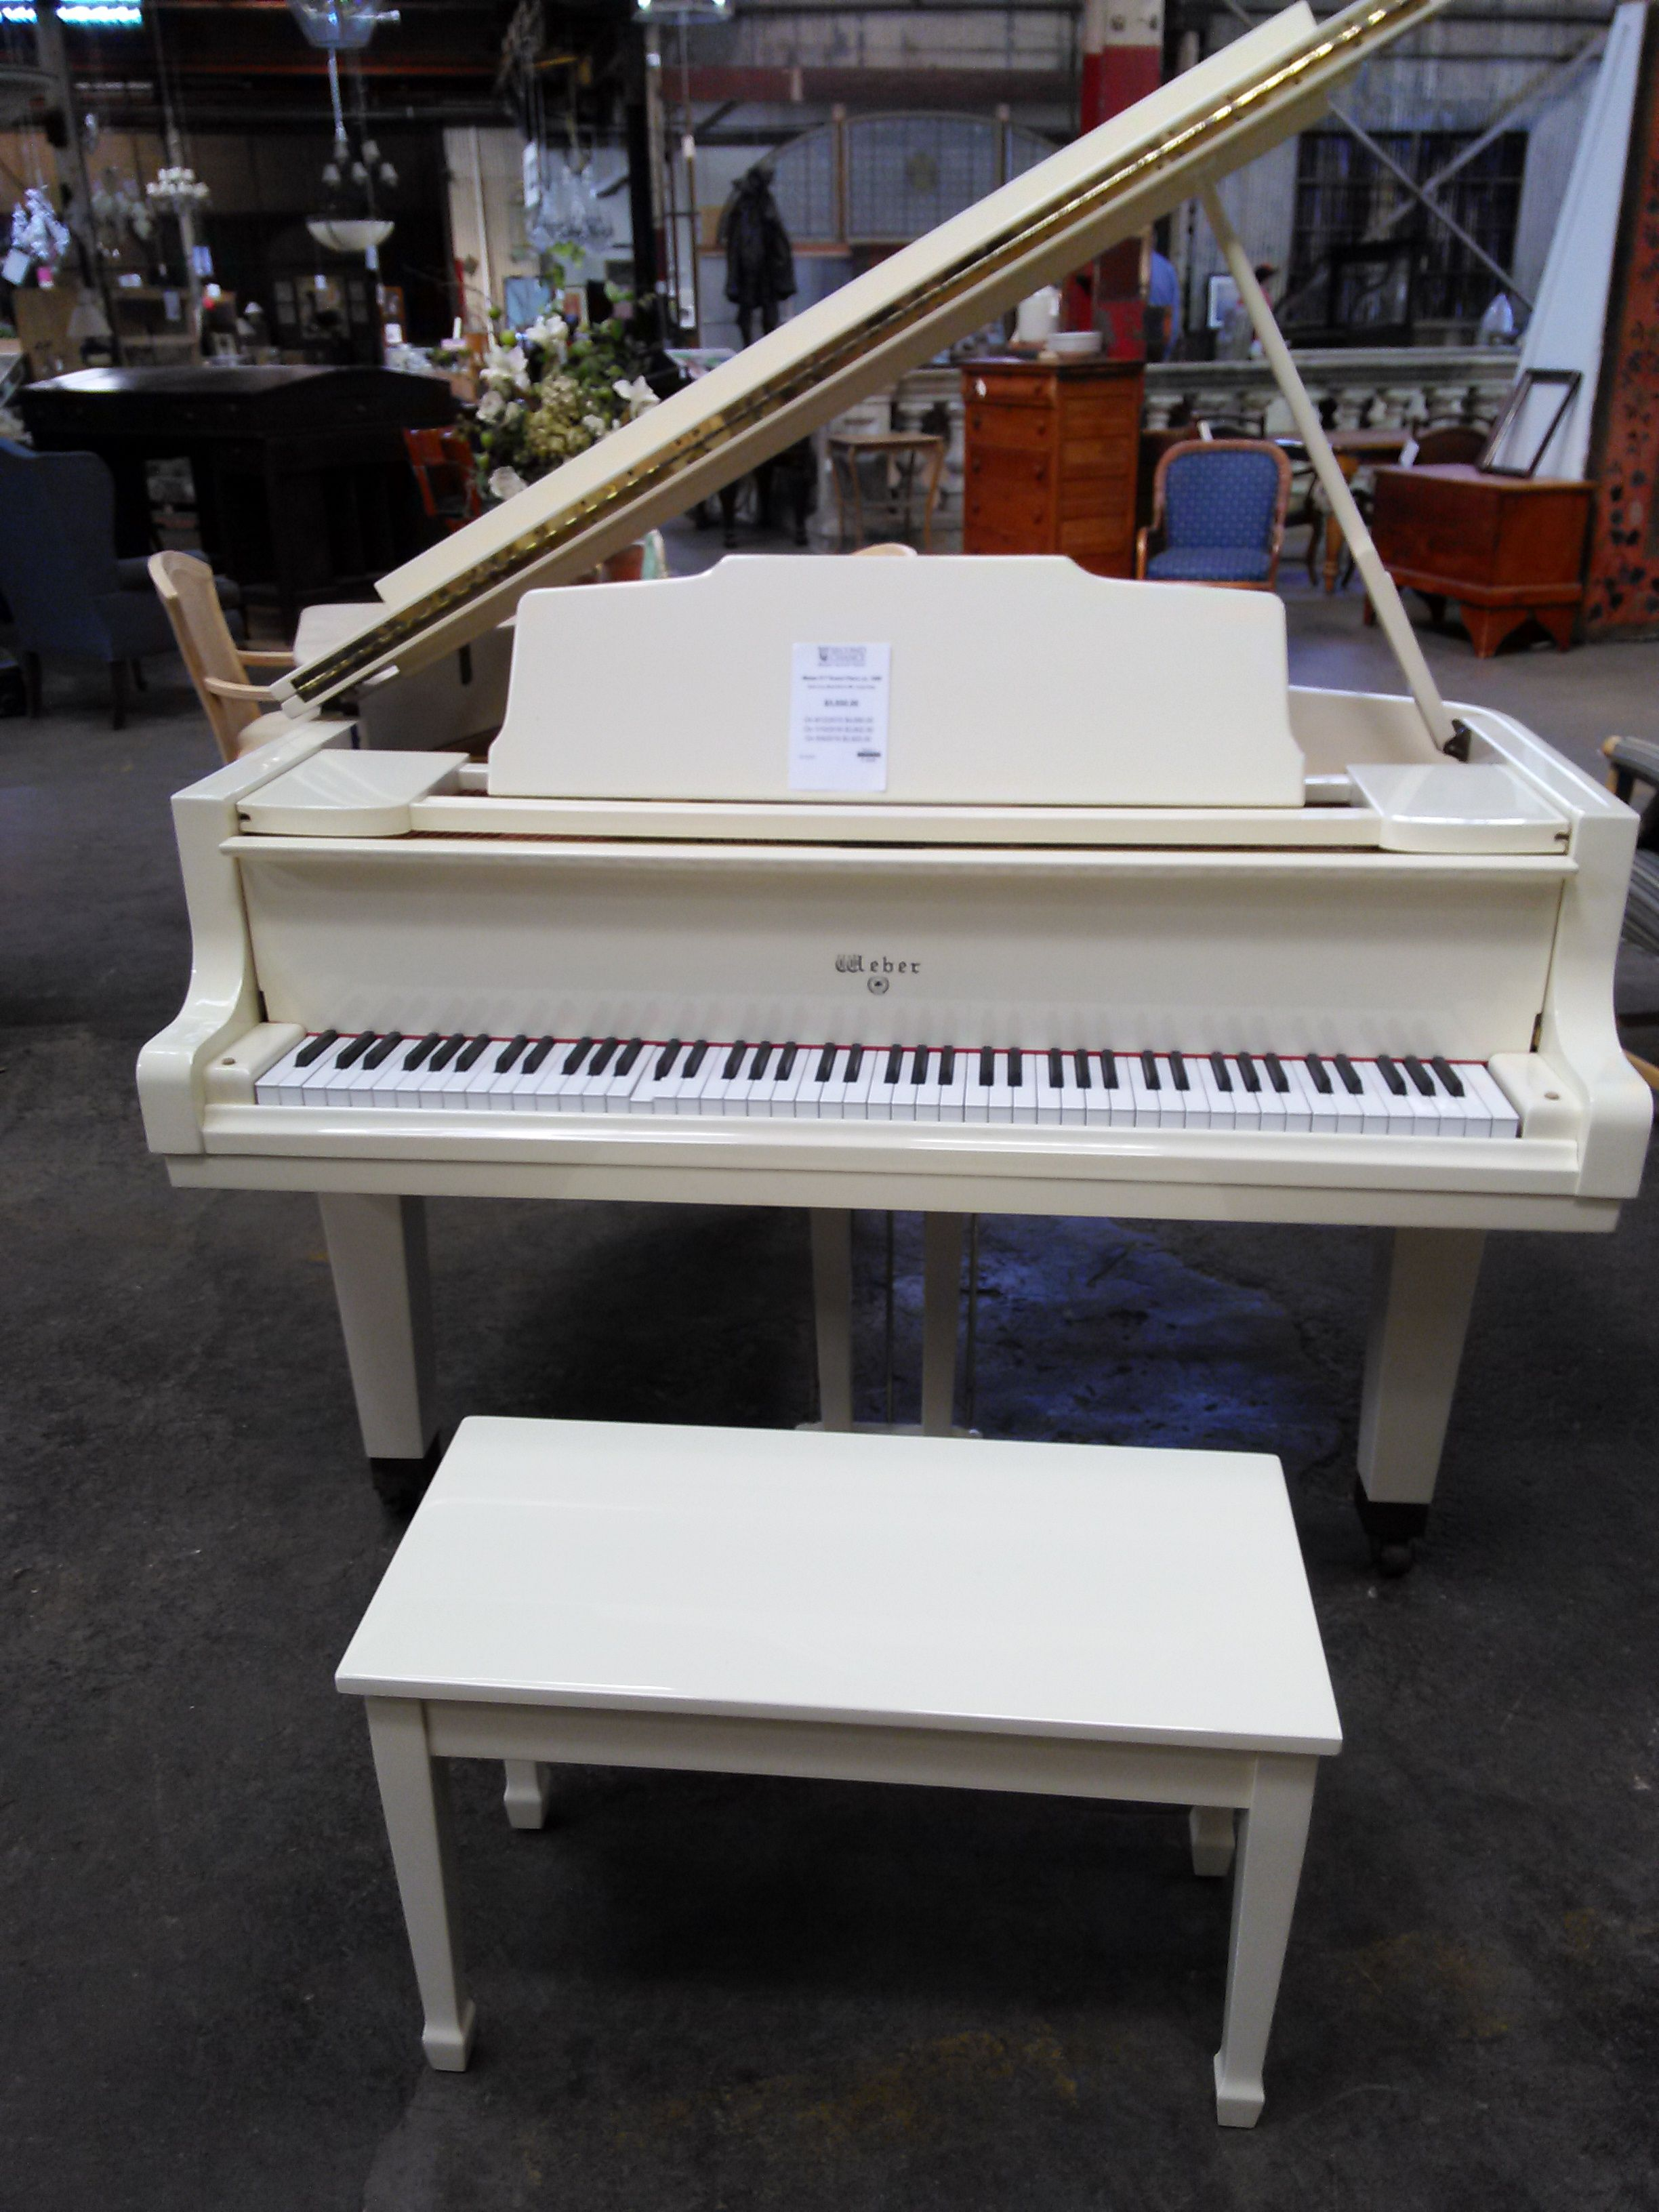 Mint Condtion Baby Grand Piano 5 1 1988 Gloss Ivory Model Wg 51 Mfr Young Chang 5 850 Baby Grand Pianos Piano Music Lovers